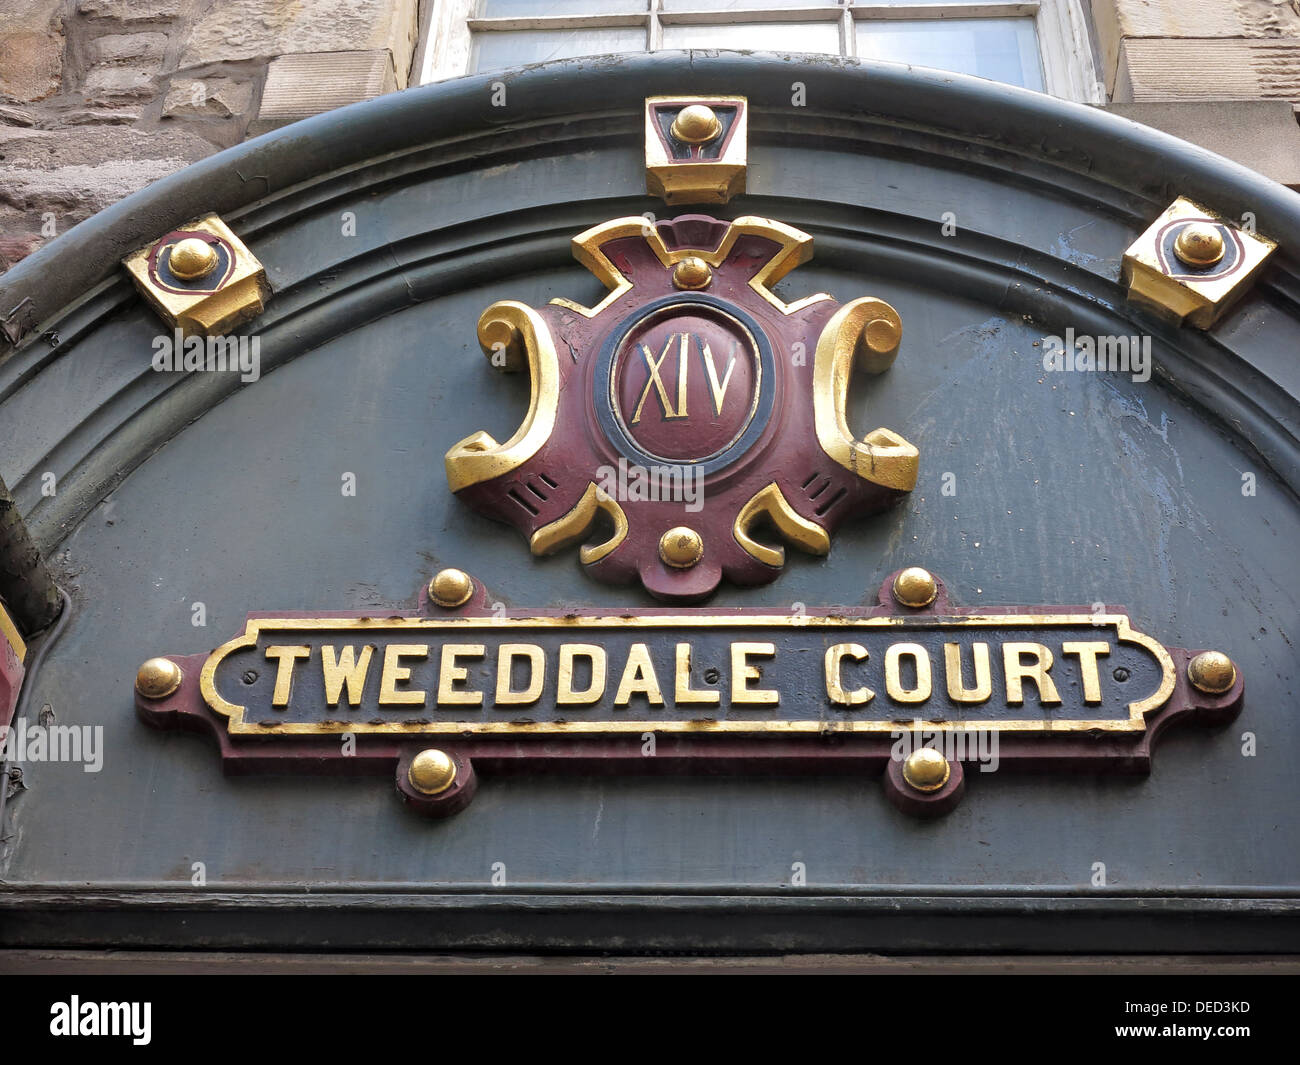 EH1,Scottish,Scot,scots,independance,independence,old,town,oldtown,XIV,history,historic,entry,sign,marking,haunted,places,locations,location,Tweedale,tweed,dale,close,closes,classic,Gotonysmith,Buy Pictures of,Buy Images Of